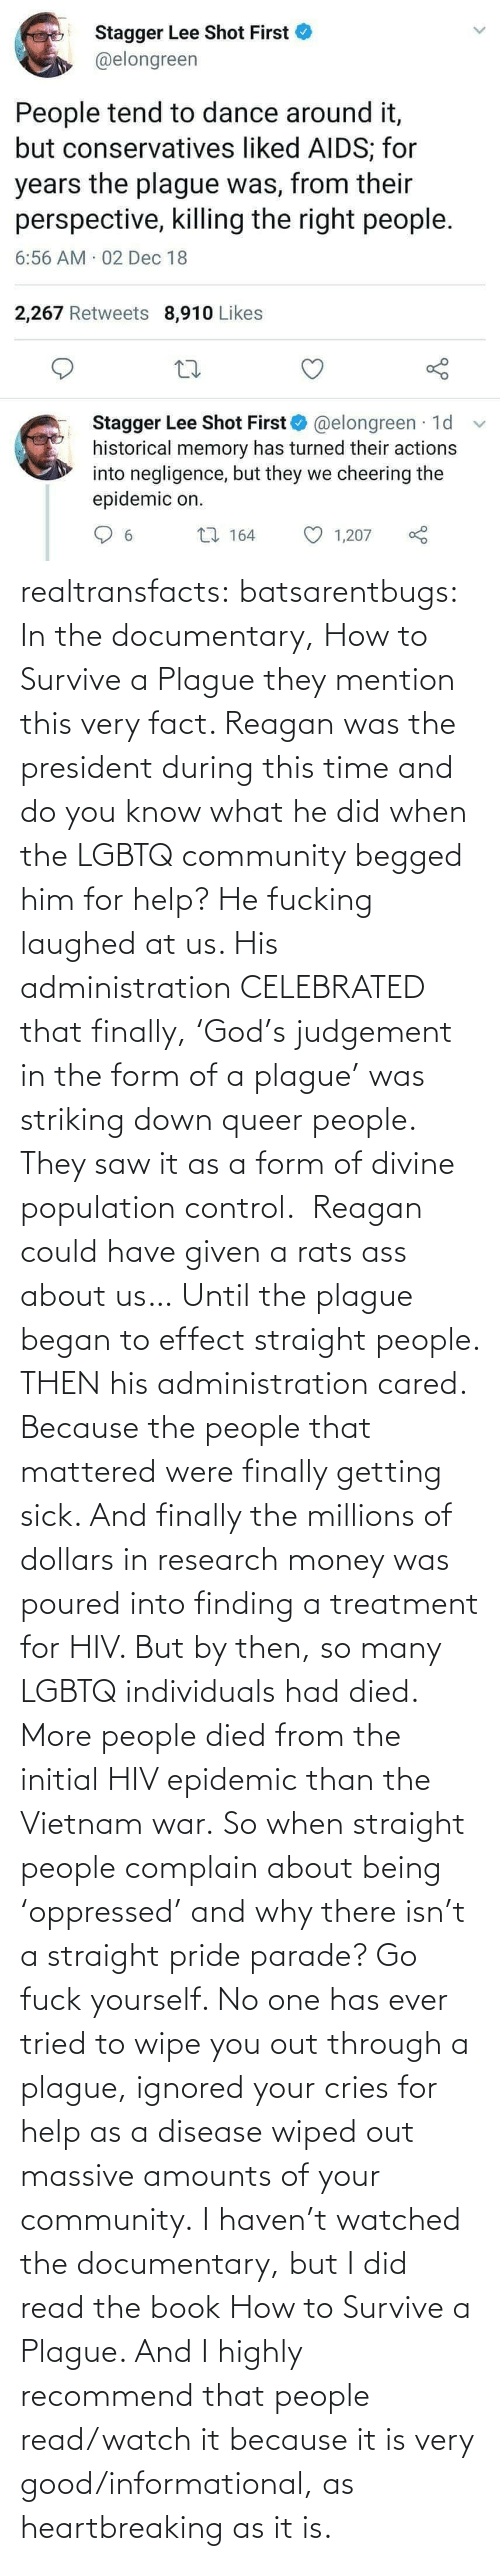 disease: Stagger Lee Shot First  @elongreen  People tend to dance around it,  but conservatives liked AIDS; for  years the plague was, from their  perspective, killing the right people.  6:56 AM 02 Dec 18  2,267 Retweets 8,910 Likes  Stagger Lee Shot First O @elongreen · 1d  historical memory has turned their actions  into negligence, but they we cheering the  epidemic on.  27 164  1,207  6. realtransfacts:  batsarentbugs:  In the documentary, How to Survive a Plague they mention this very fact. Reagan was the president during this time and do you know what he did when the LGBTQ community begged him for help? He fucking laughed at us. His administration CELEBRATED that finally, 'God's judgement in the form of a plague' was striking down queer people.  They saw it as a form of divine population control.  Reagan could have given a rats ass about us… Until the plague began to effect straight people. THEN his administration cared. Because the people that mattered were finally getting sick. And finally the millions of dollars in research money was poured into finding a treatment for HIV. But by then, so many LGBTQ individuals had died.  More people died from the initial HIV epidemic than the Vietnam war. So when straight people complain about being 'oppressed' and why there isn't a straight pride parade? Go fuck yourself. No one has ever tried to wipe you out through a plague, ignored your cries for help as a disease wiped out massive amounts of your community.  I haven't watched the documentary, but I did read the book  How to Survive a Plague. And I highly recommend that people read/watch it because it is very good/informational, as heartbreaking as it is.